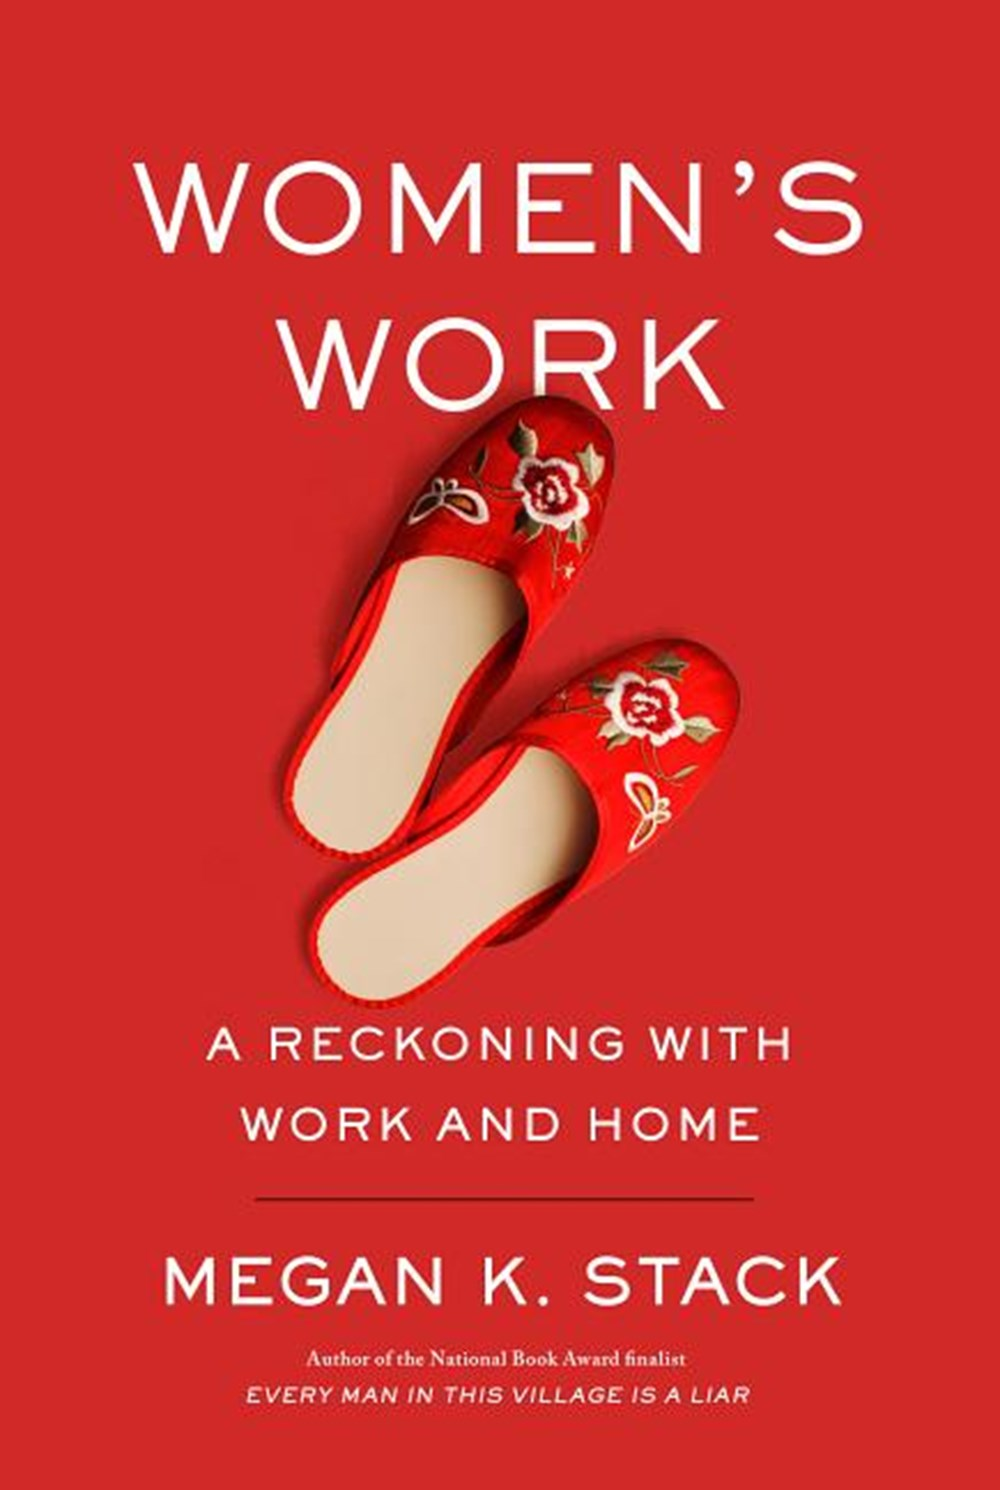 Women's Work A Reckoning with Work and Home